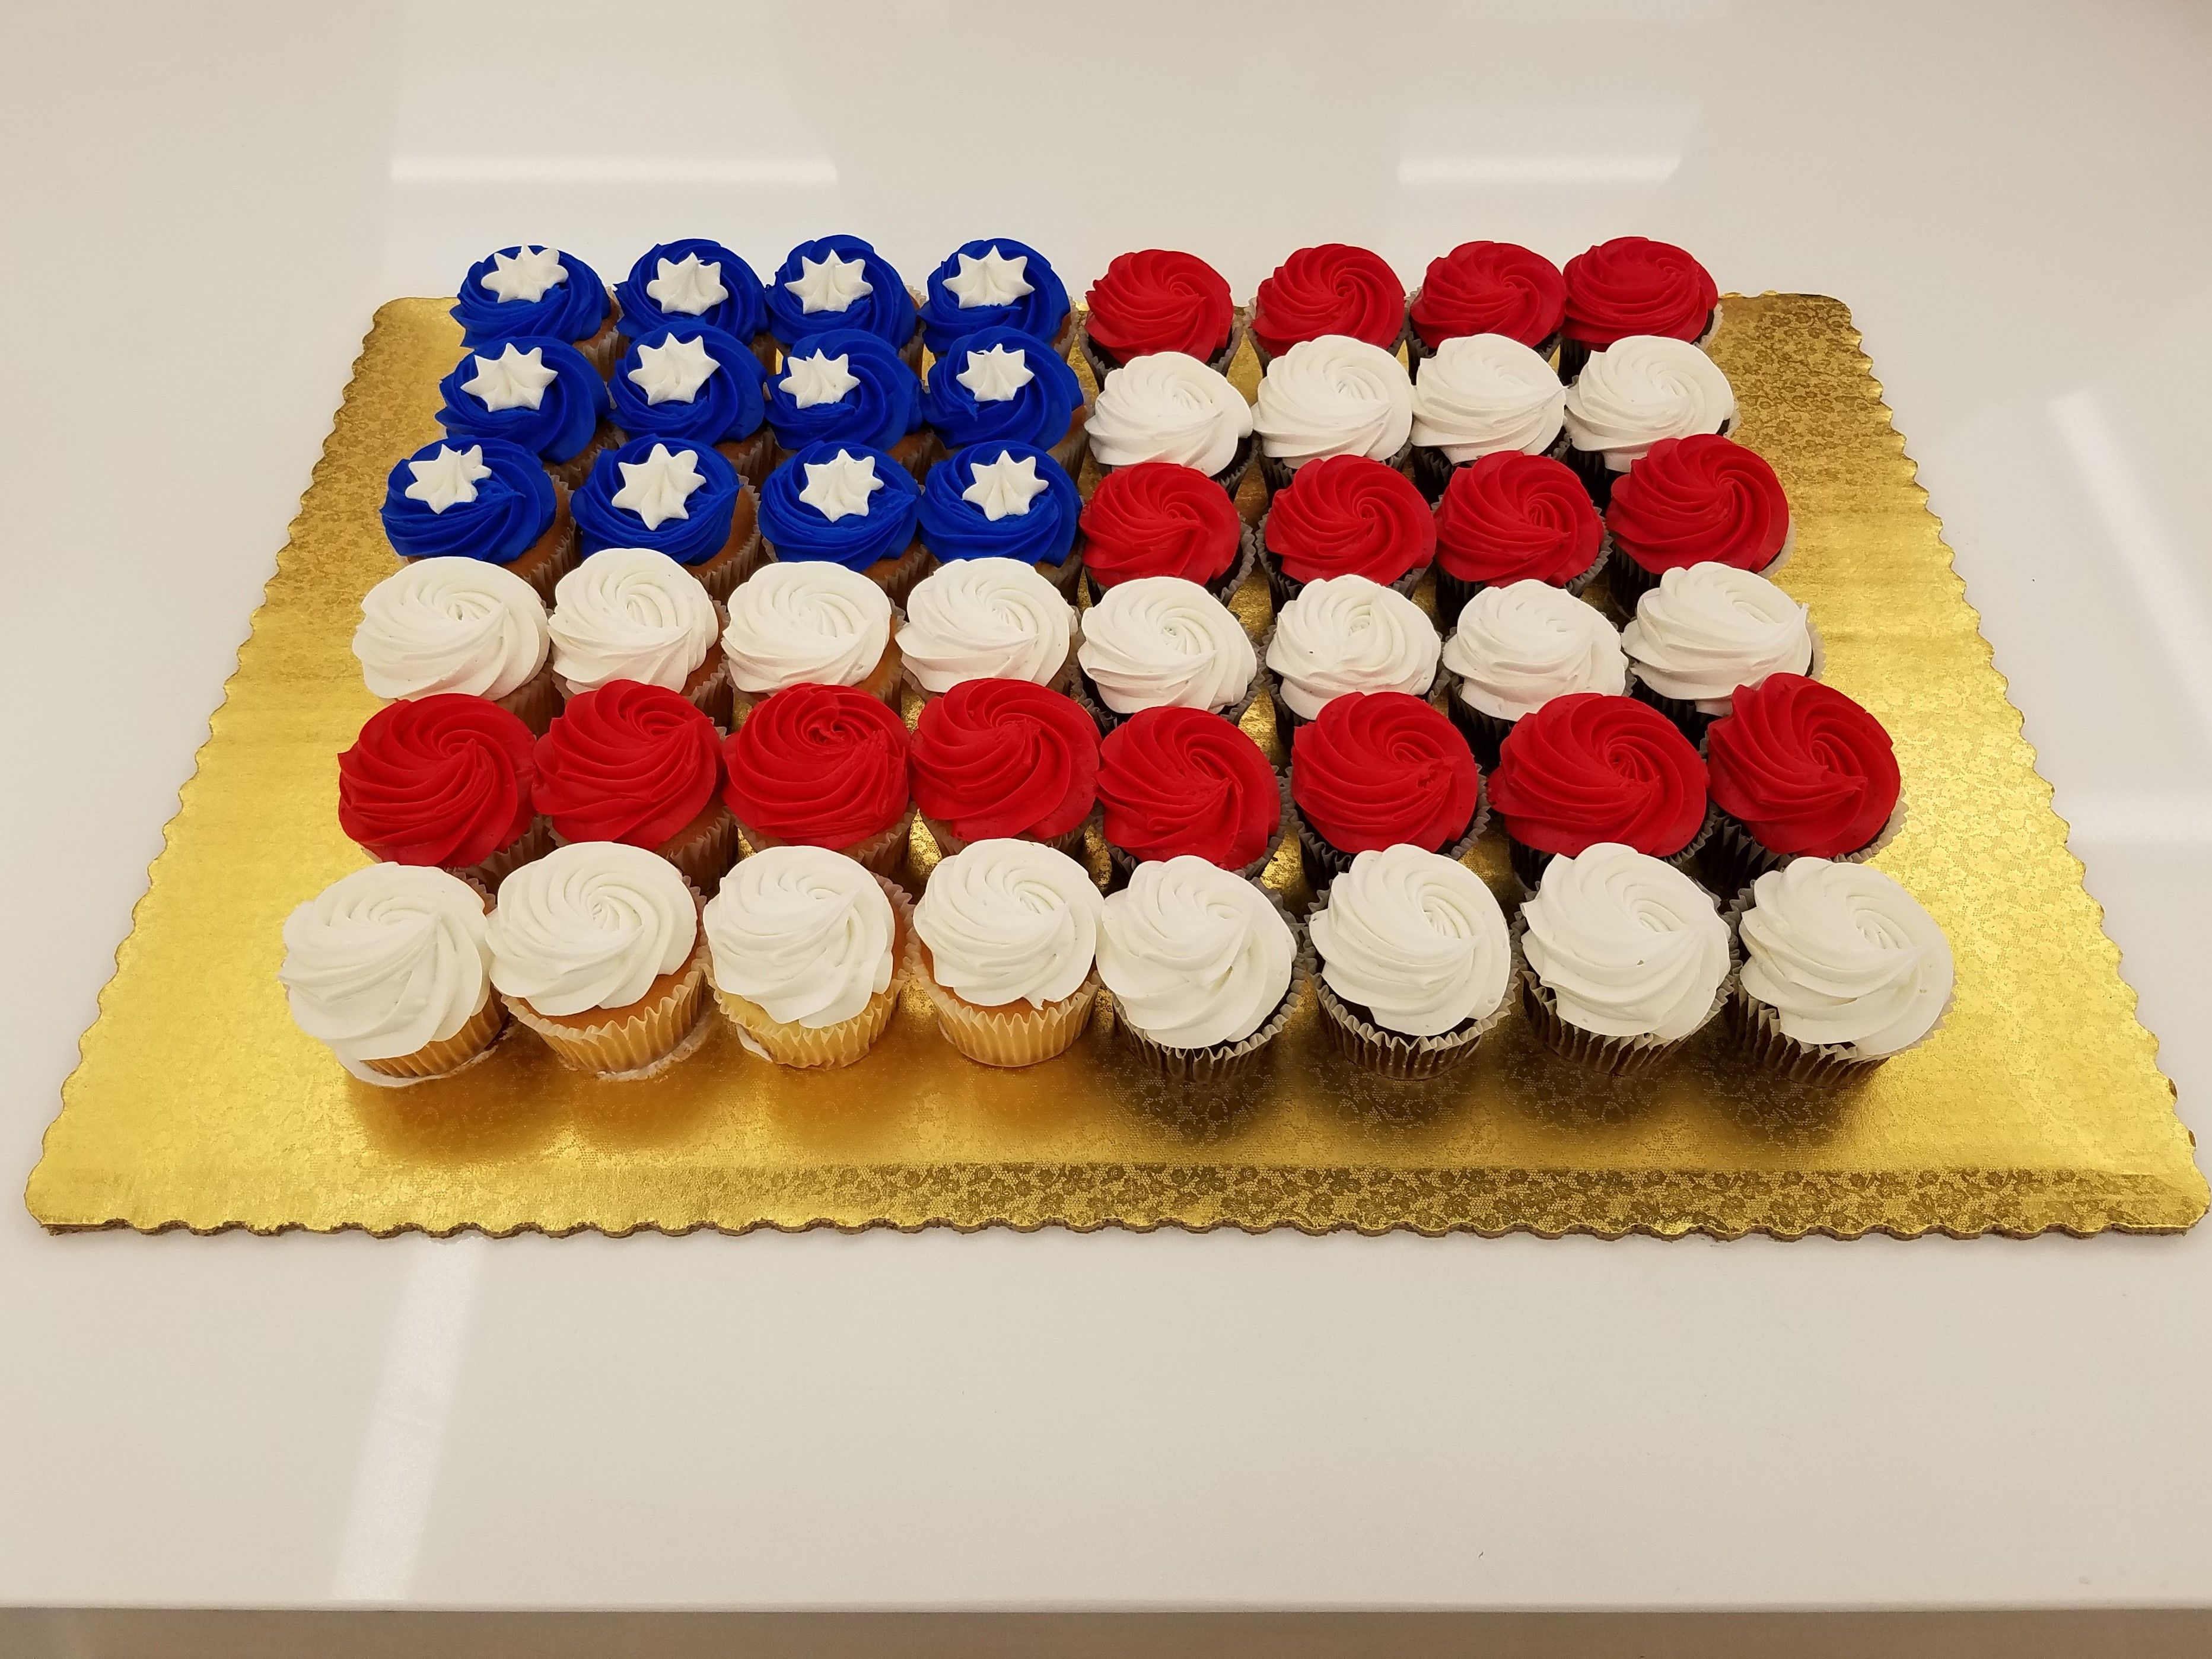 The Houston VERN team shared awareness of US Flag Day by providing fellow employees cupcakes and info about the significance of the holiday